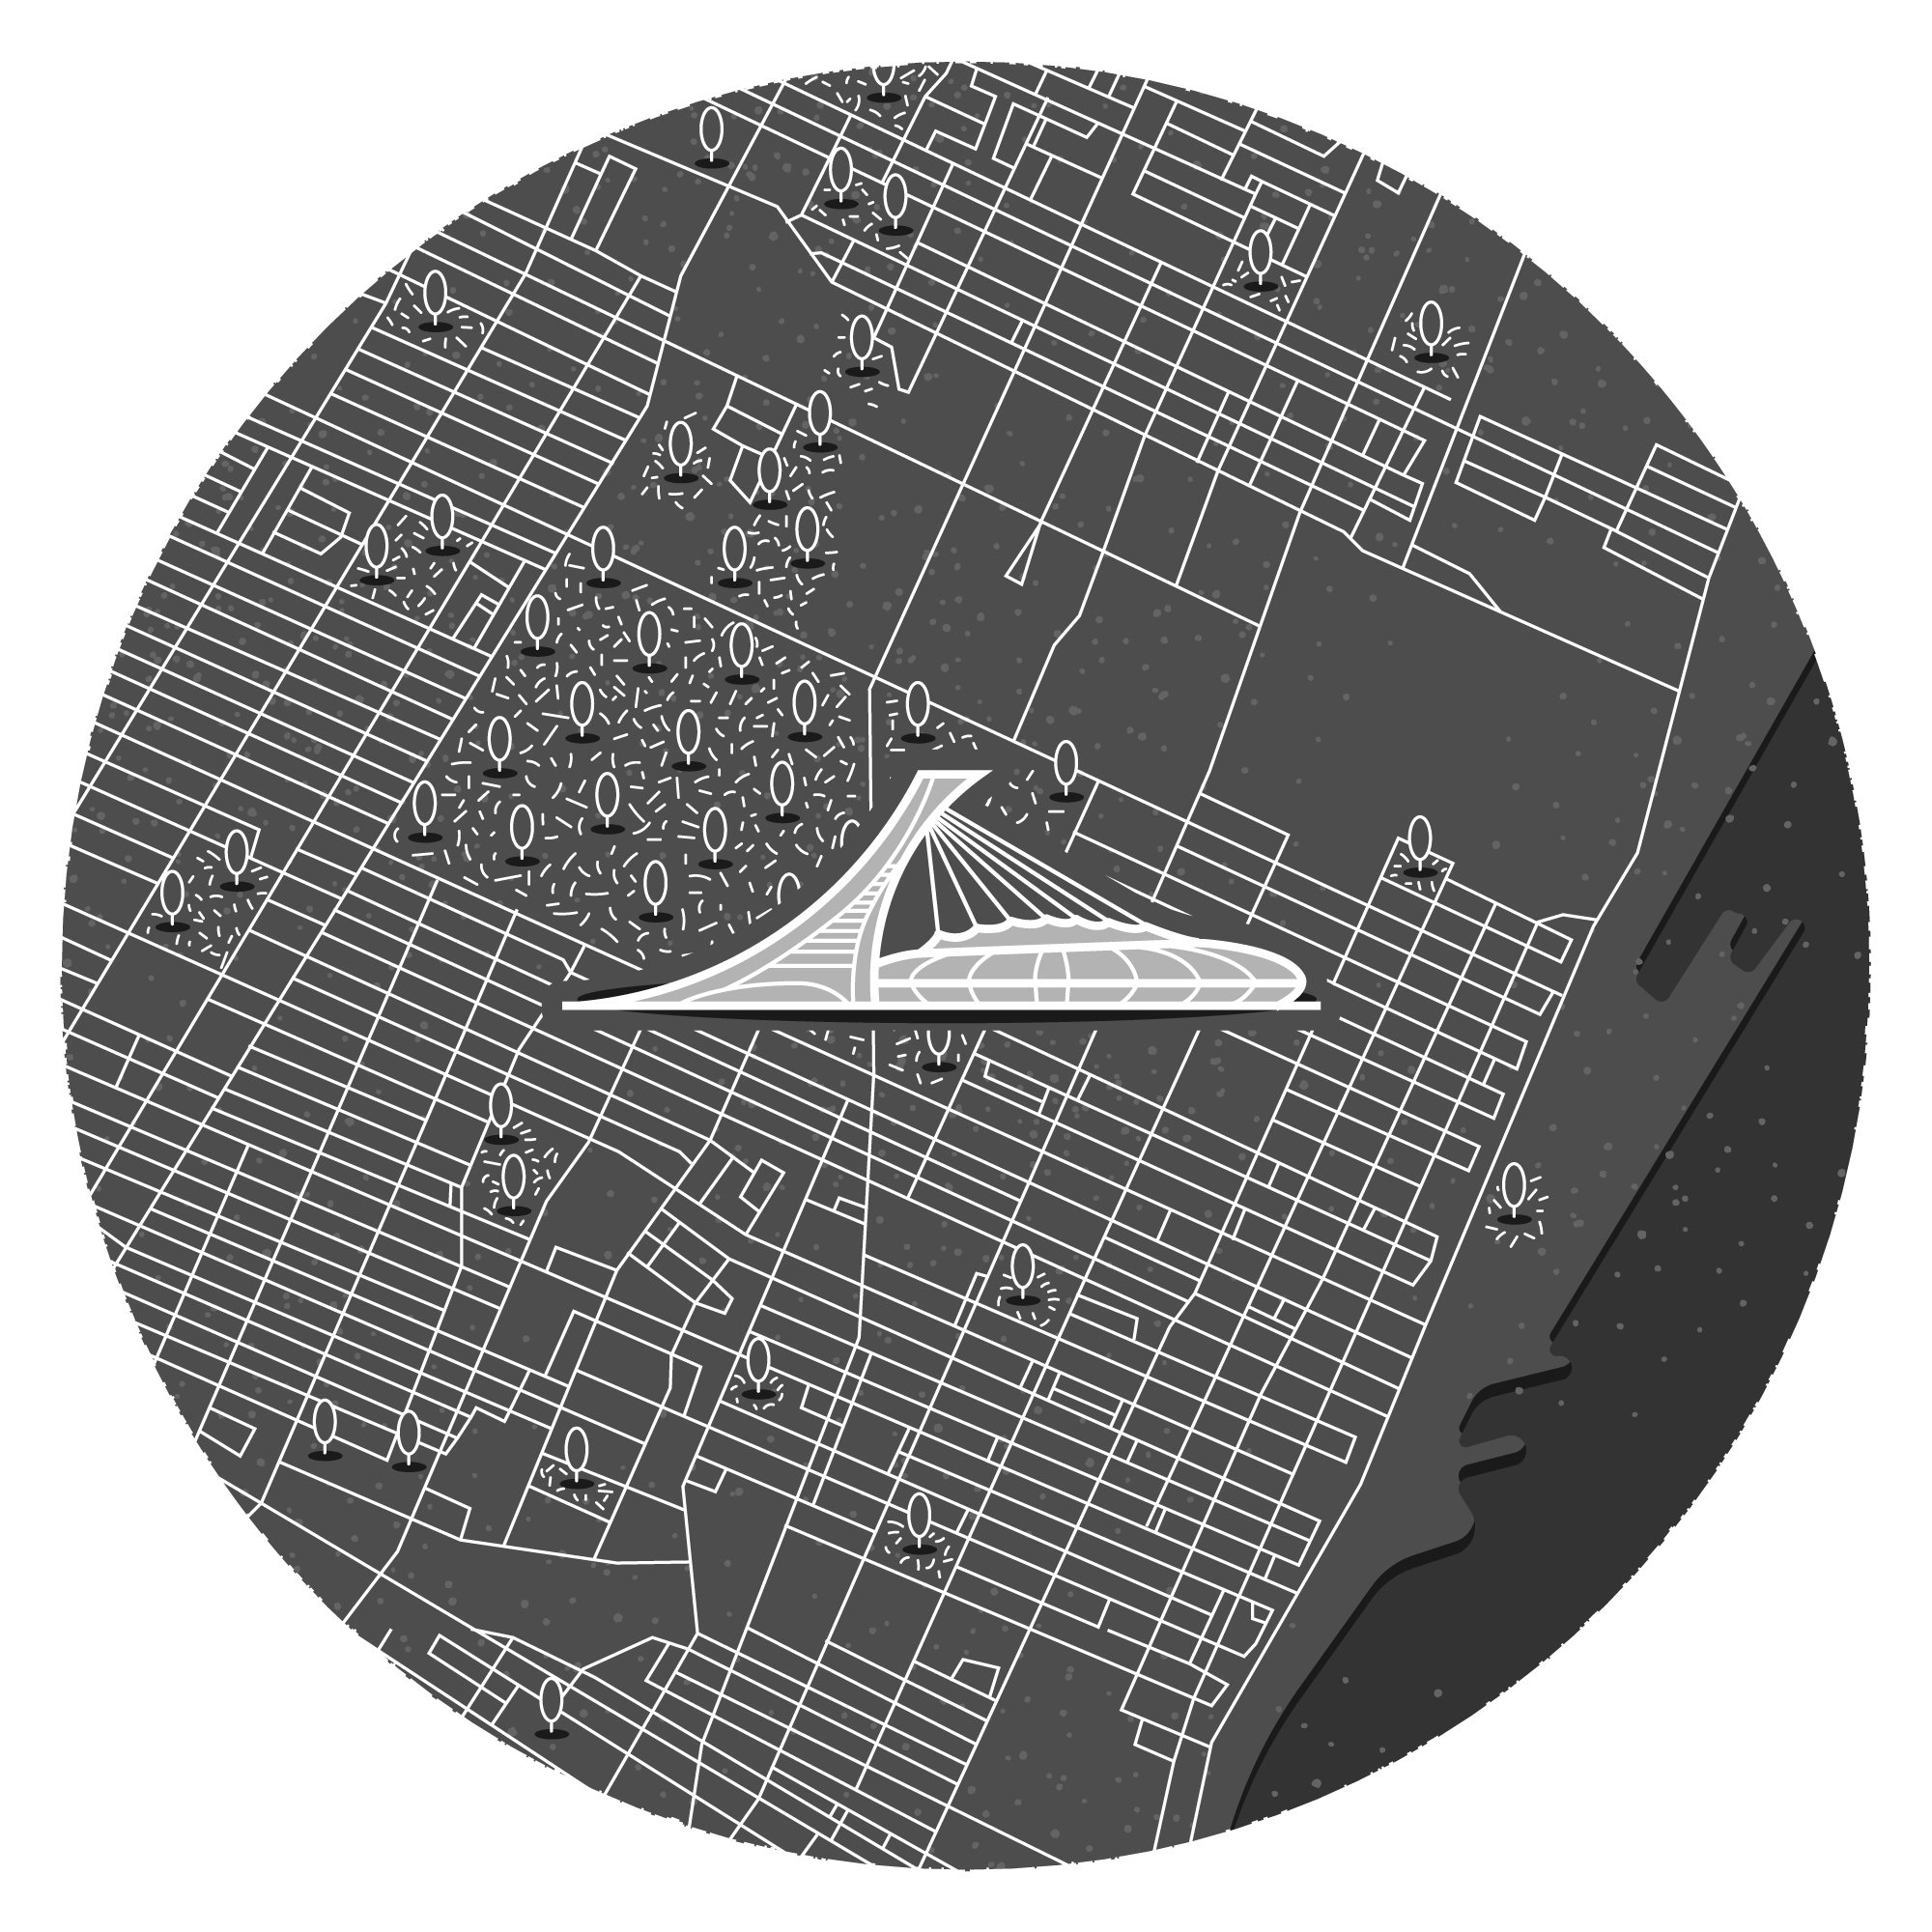 Mini illustrated map of Montreal